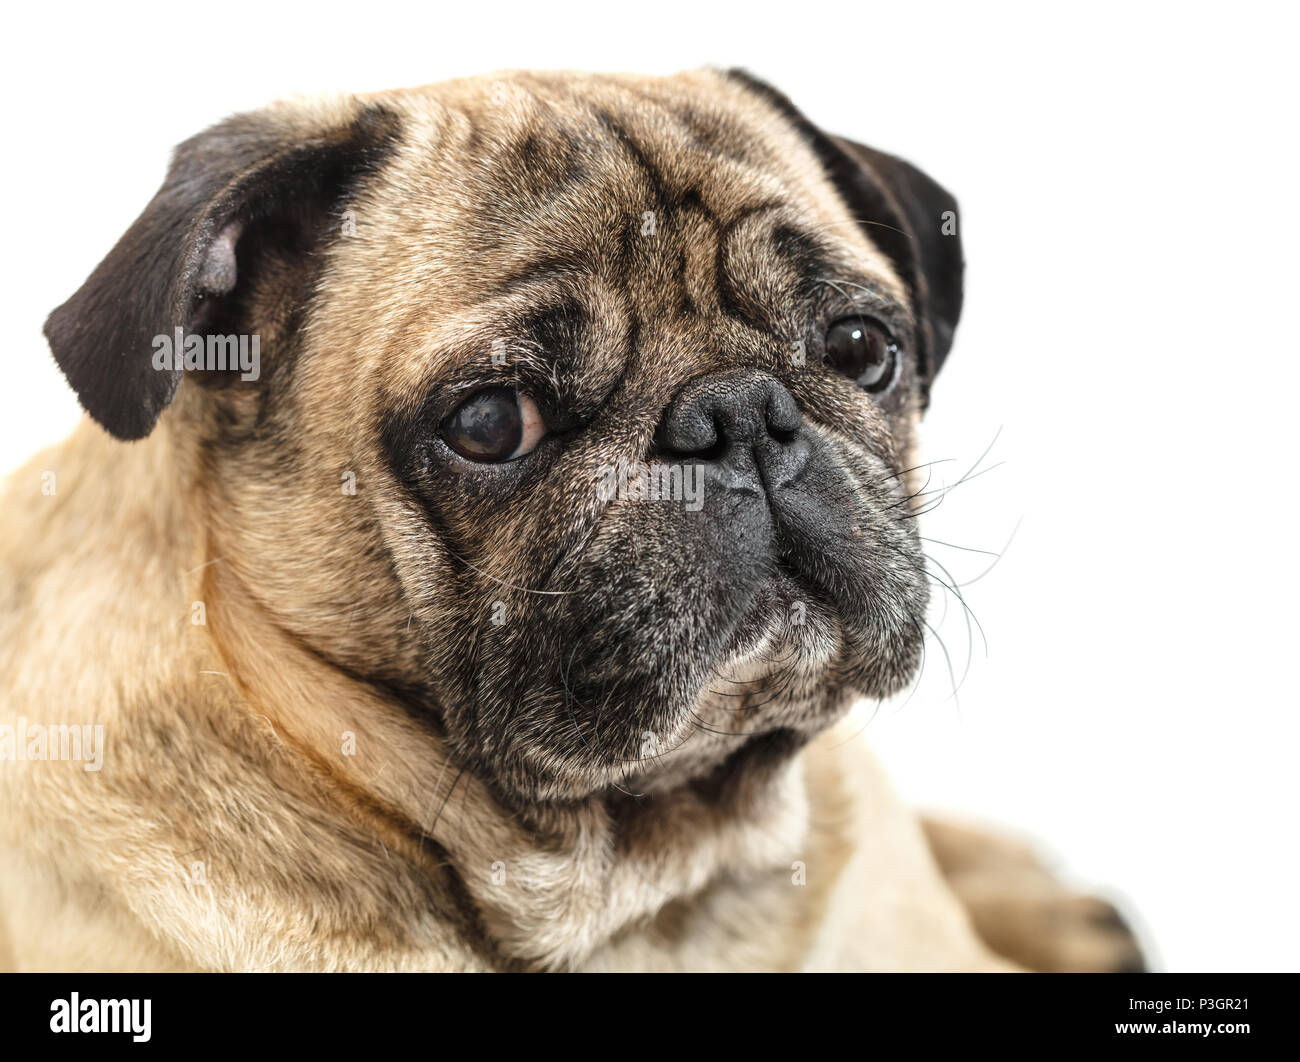 portrait of a pug close-up on white background - Stock Image